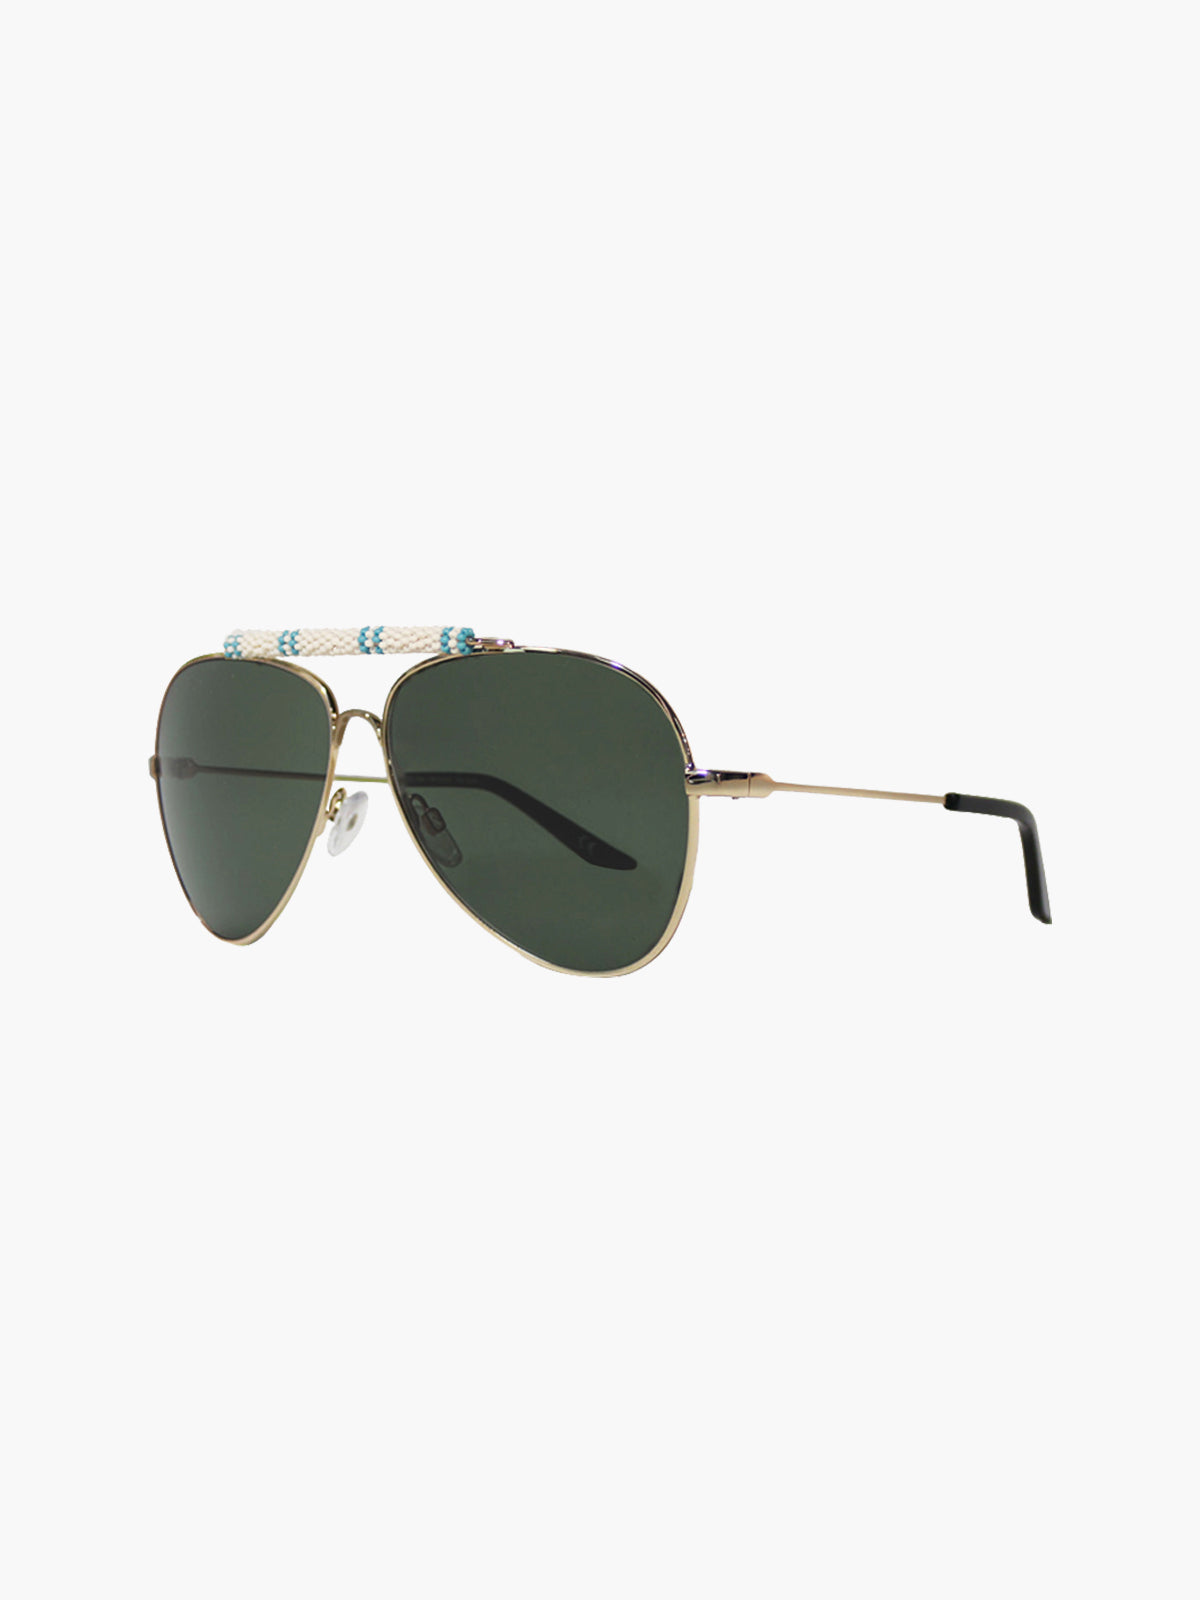 Exclusive Sunglasses | White/Light Blue Exclusive Sunglasses | White/Light Blue